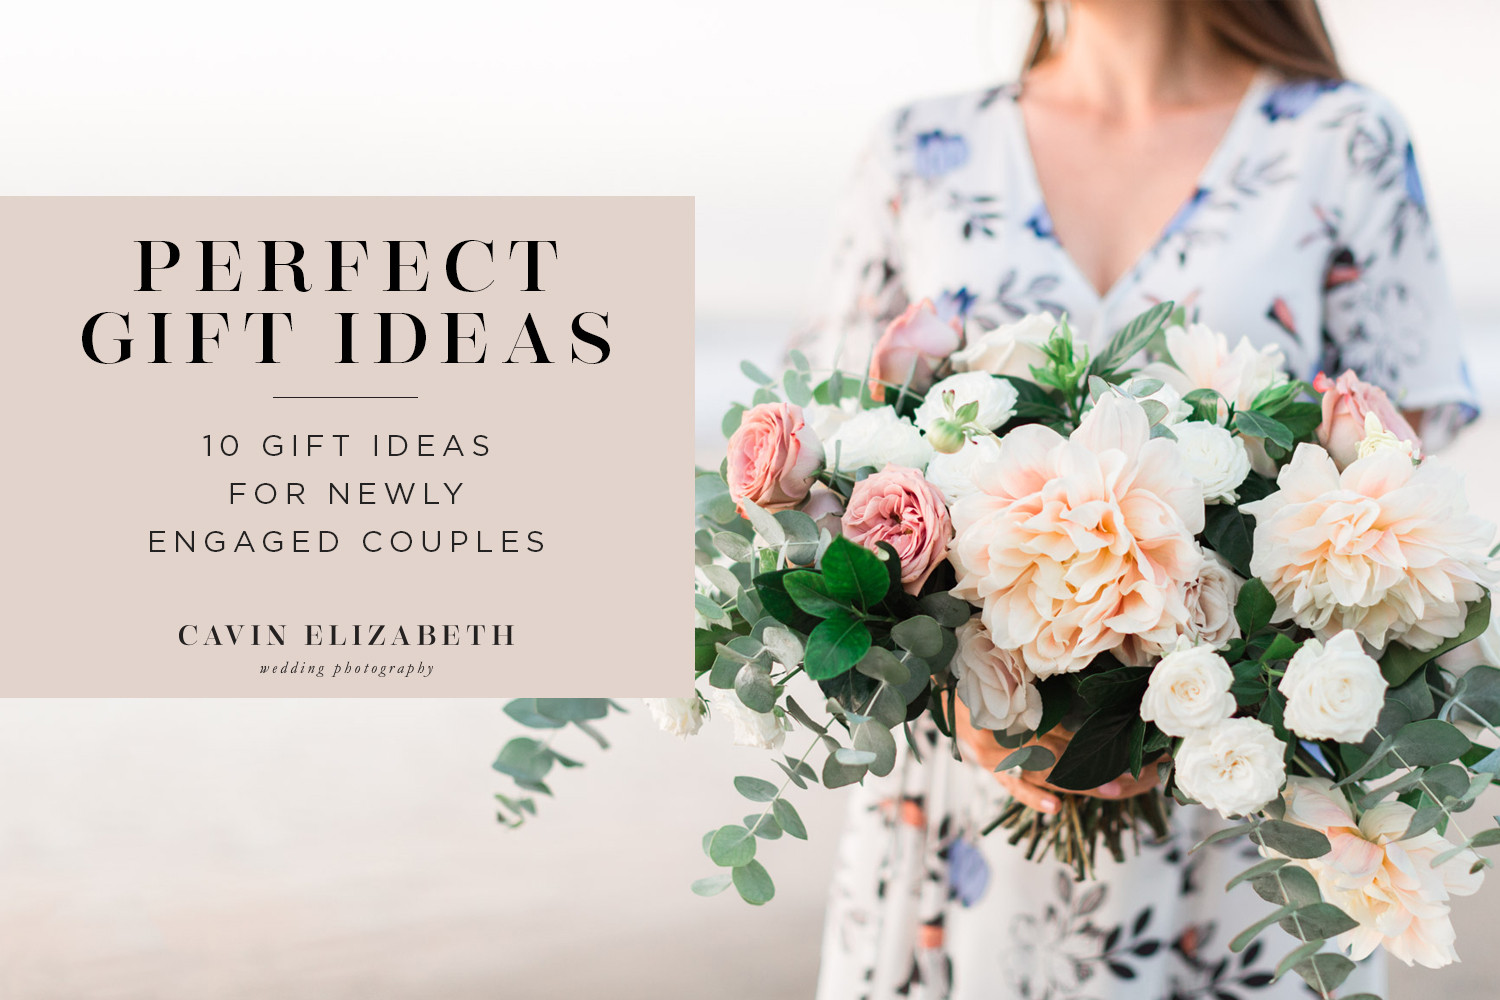 Gift Ideas For Newly Engaged Couple  10 Ideas for Wedding Gifts for Newly Engaged Couples in 2018